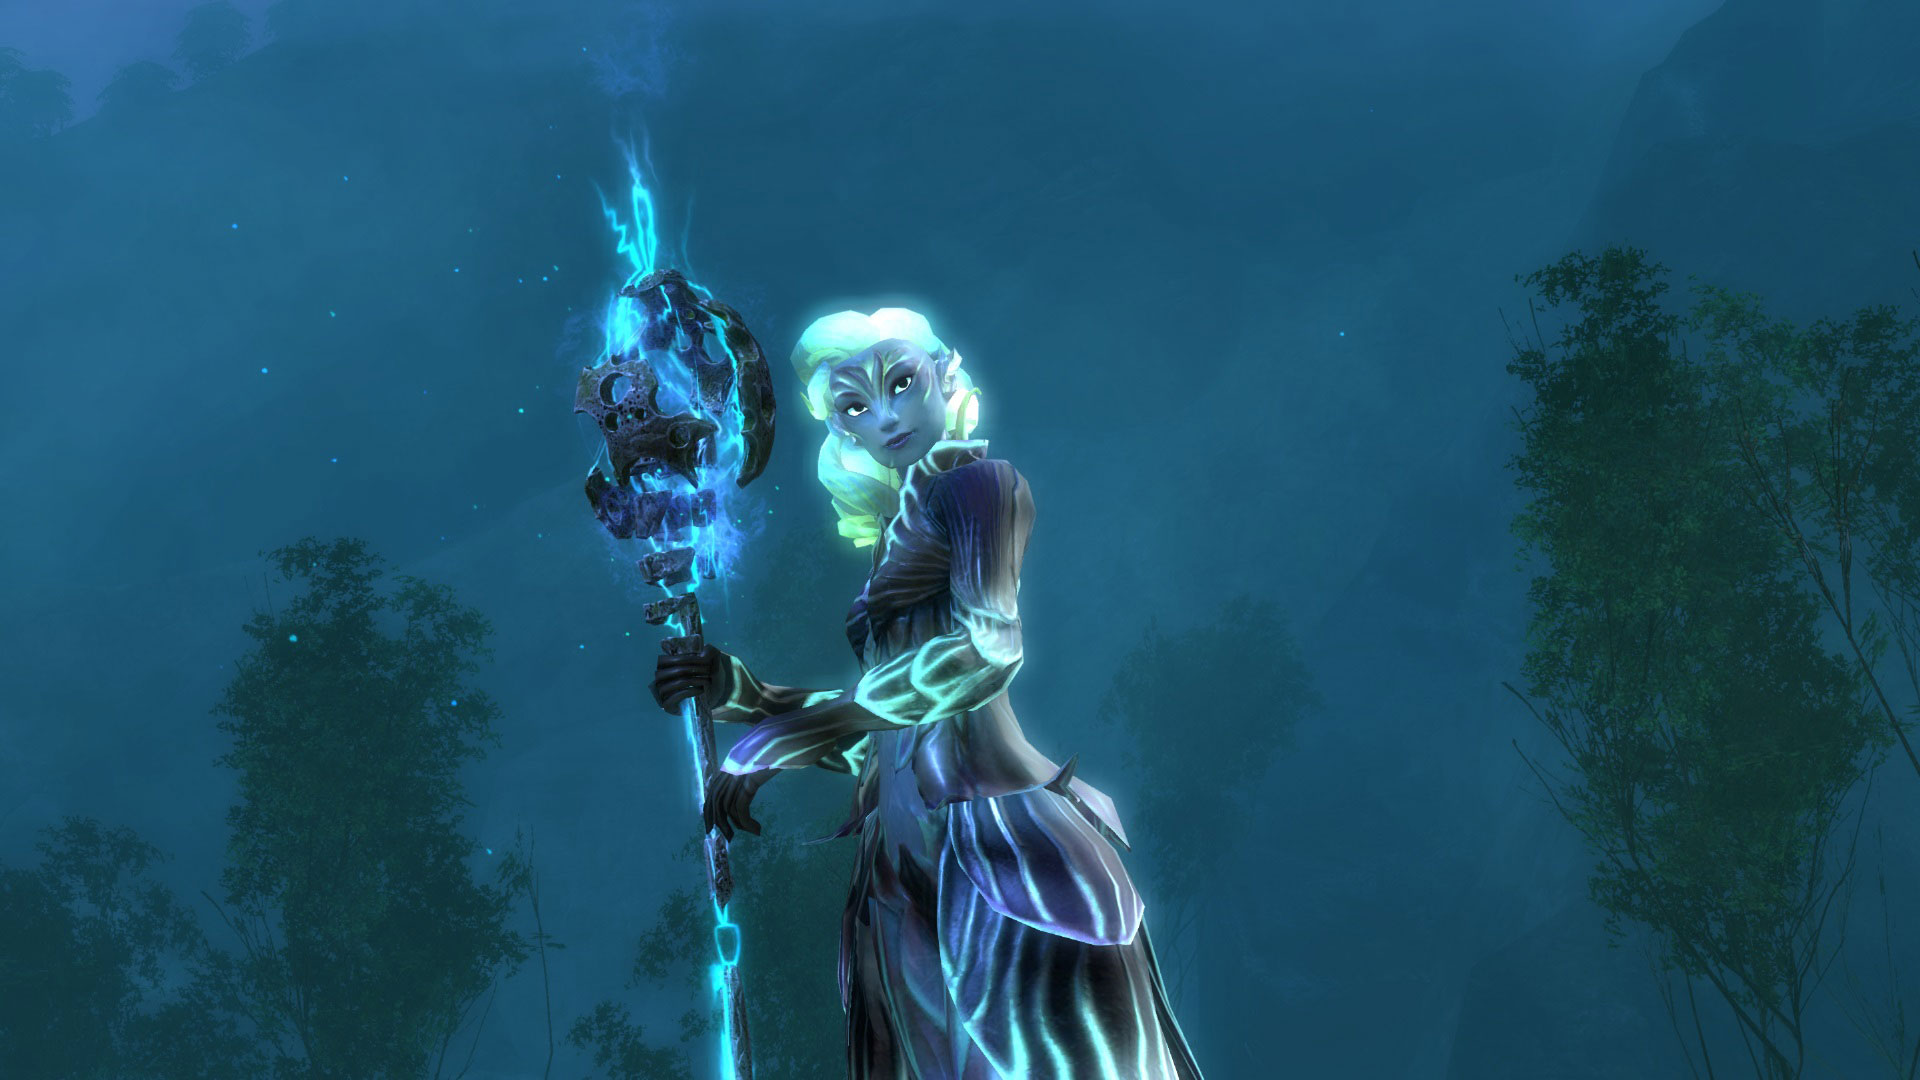 New Hairstyles Weapons And More In The Gem Store Guildwars2com